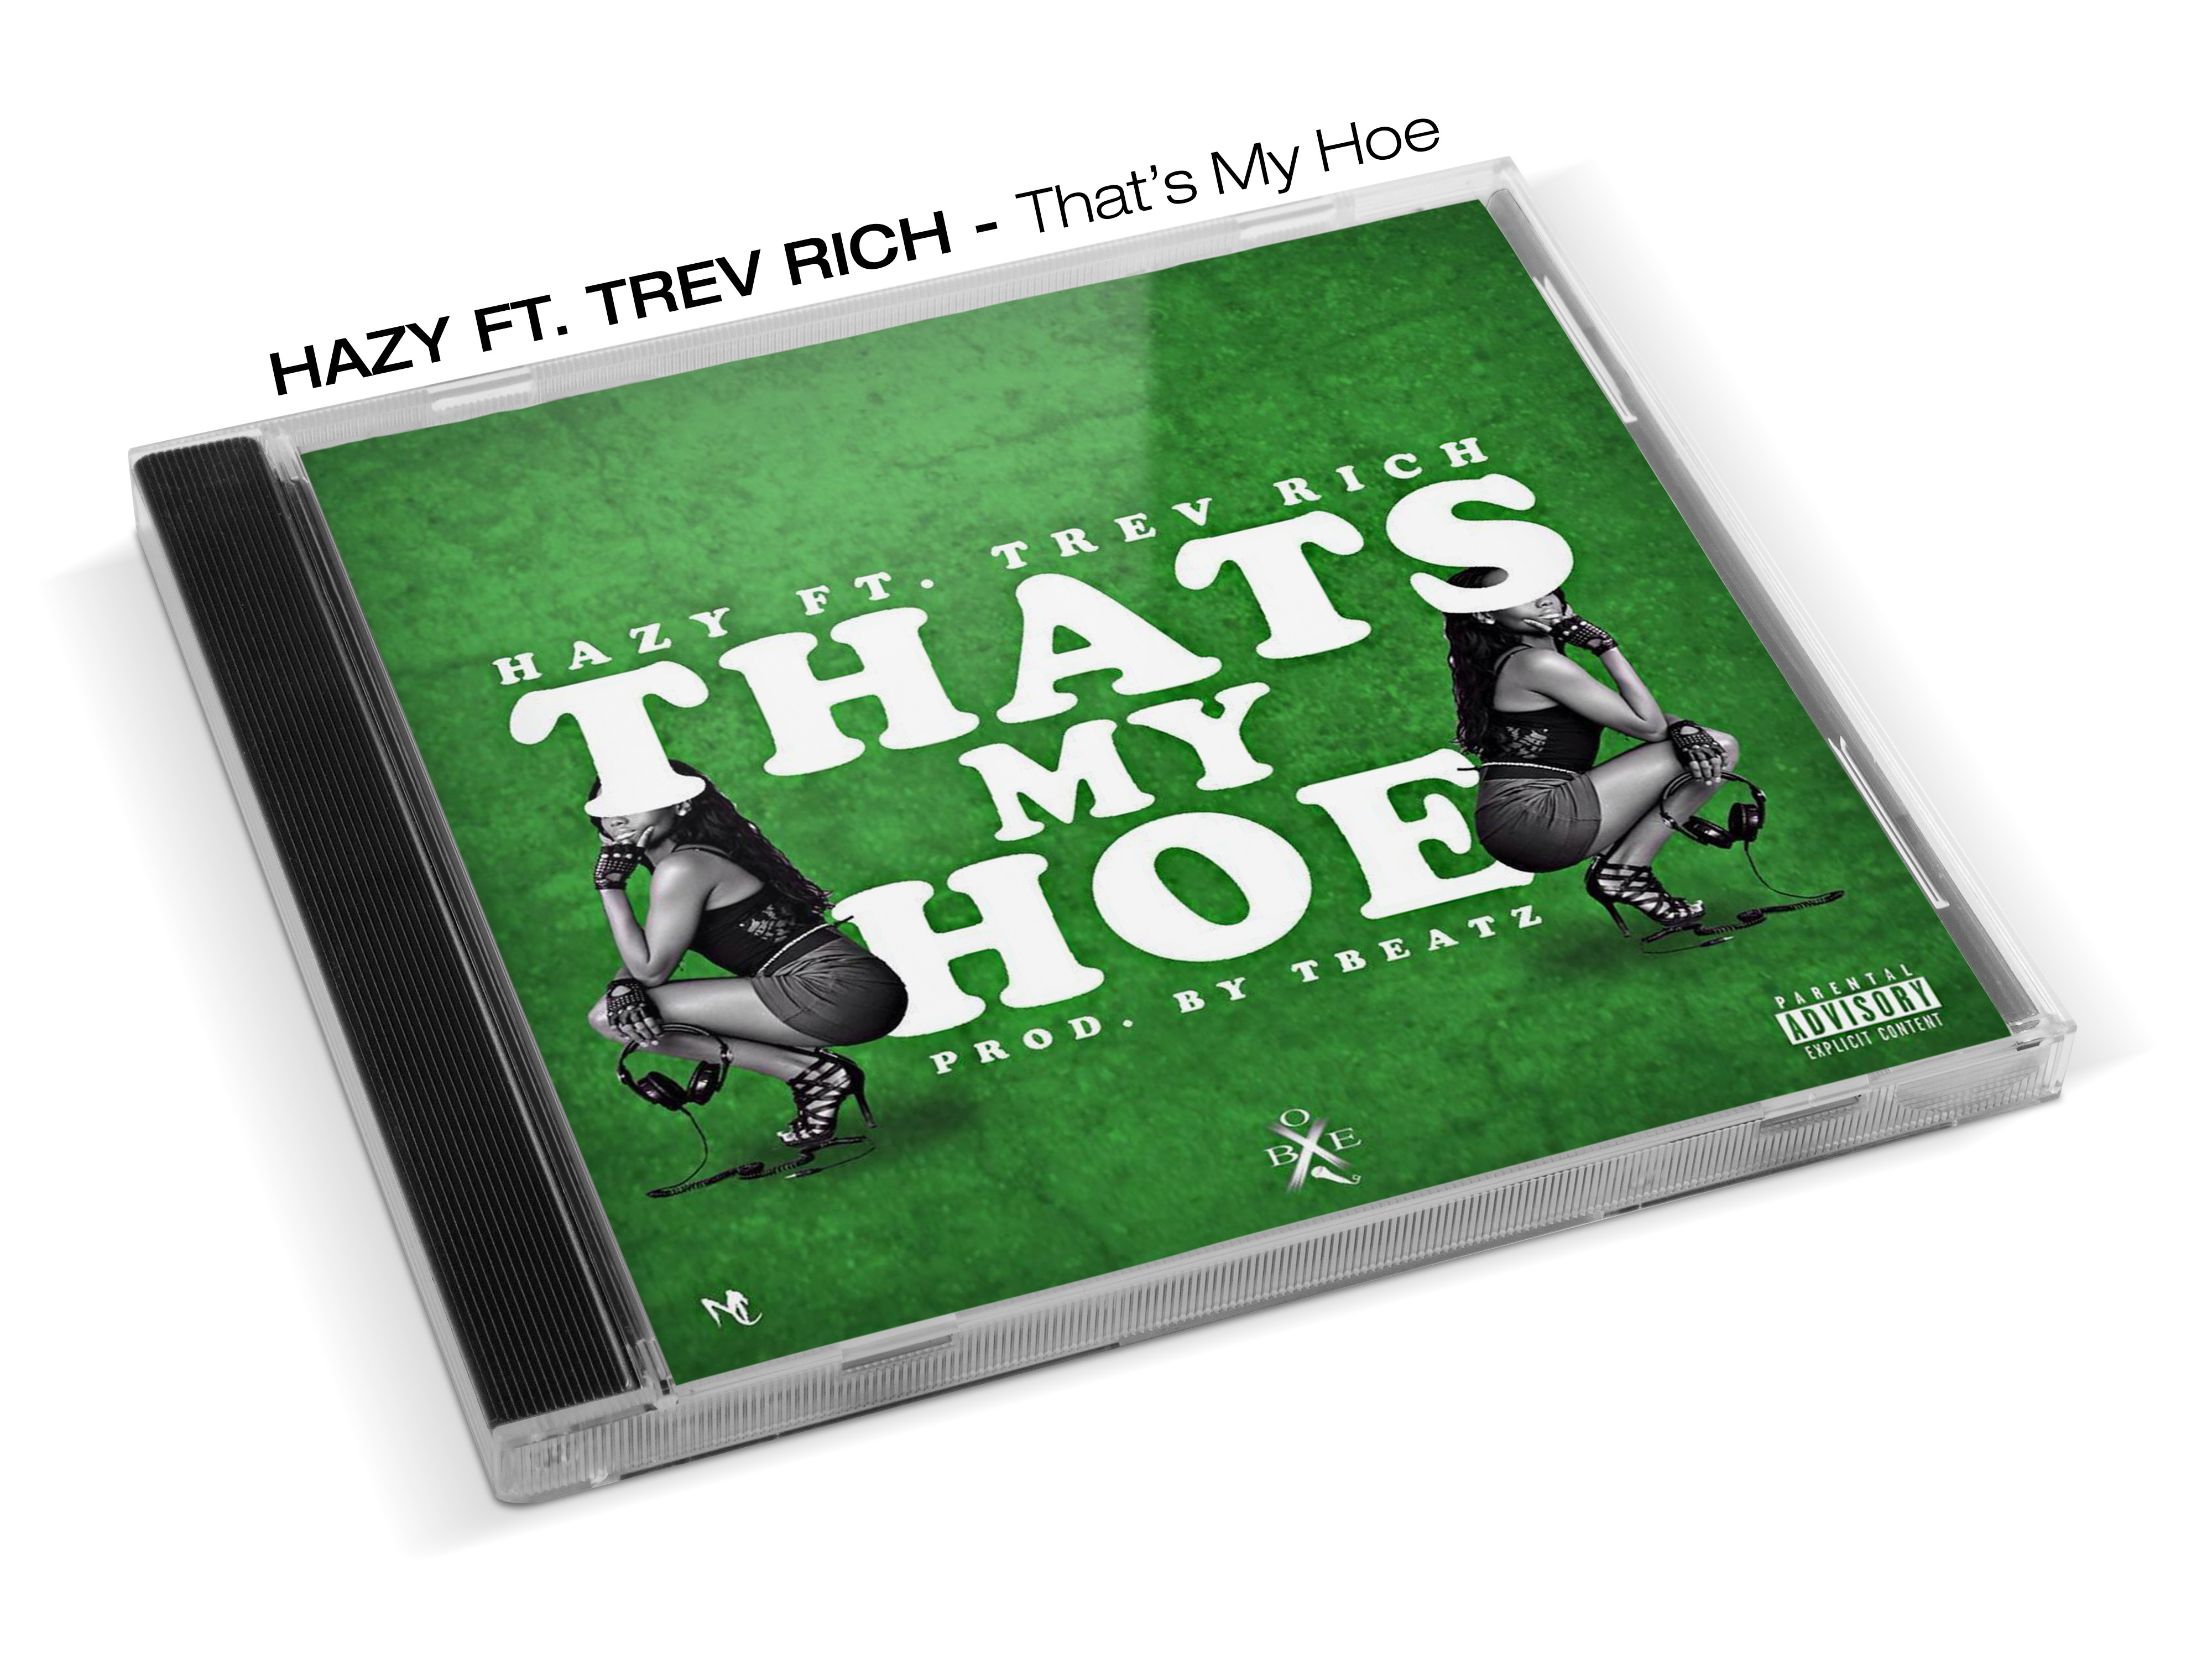 Thats My Hoe CD